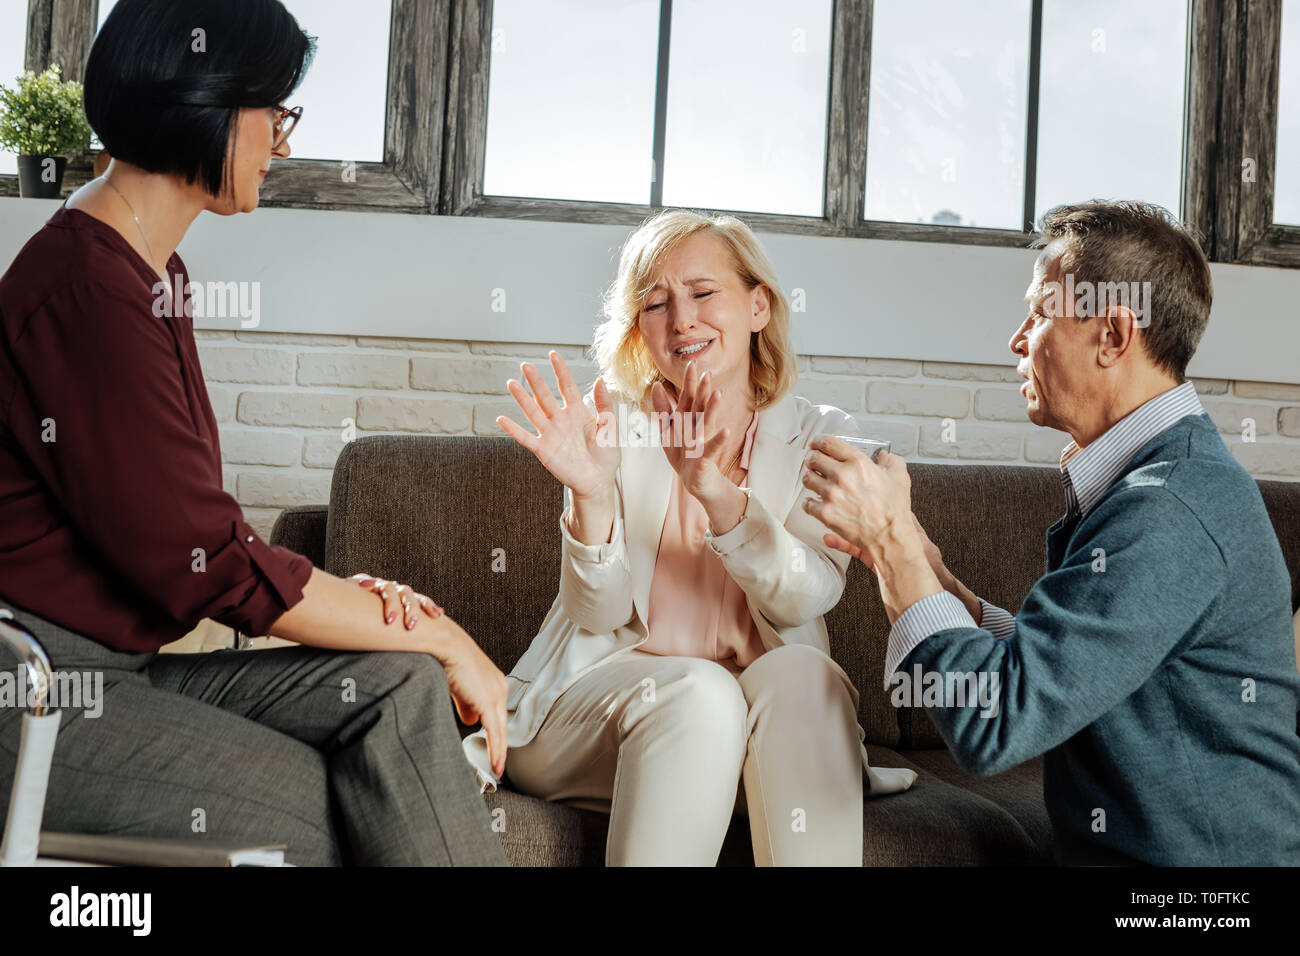 Upset and unhappy good-looking woman actively gesturing and explaining - Stock Image